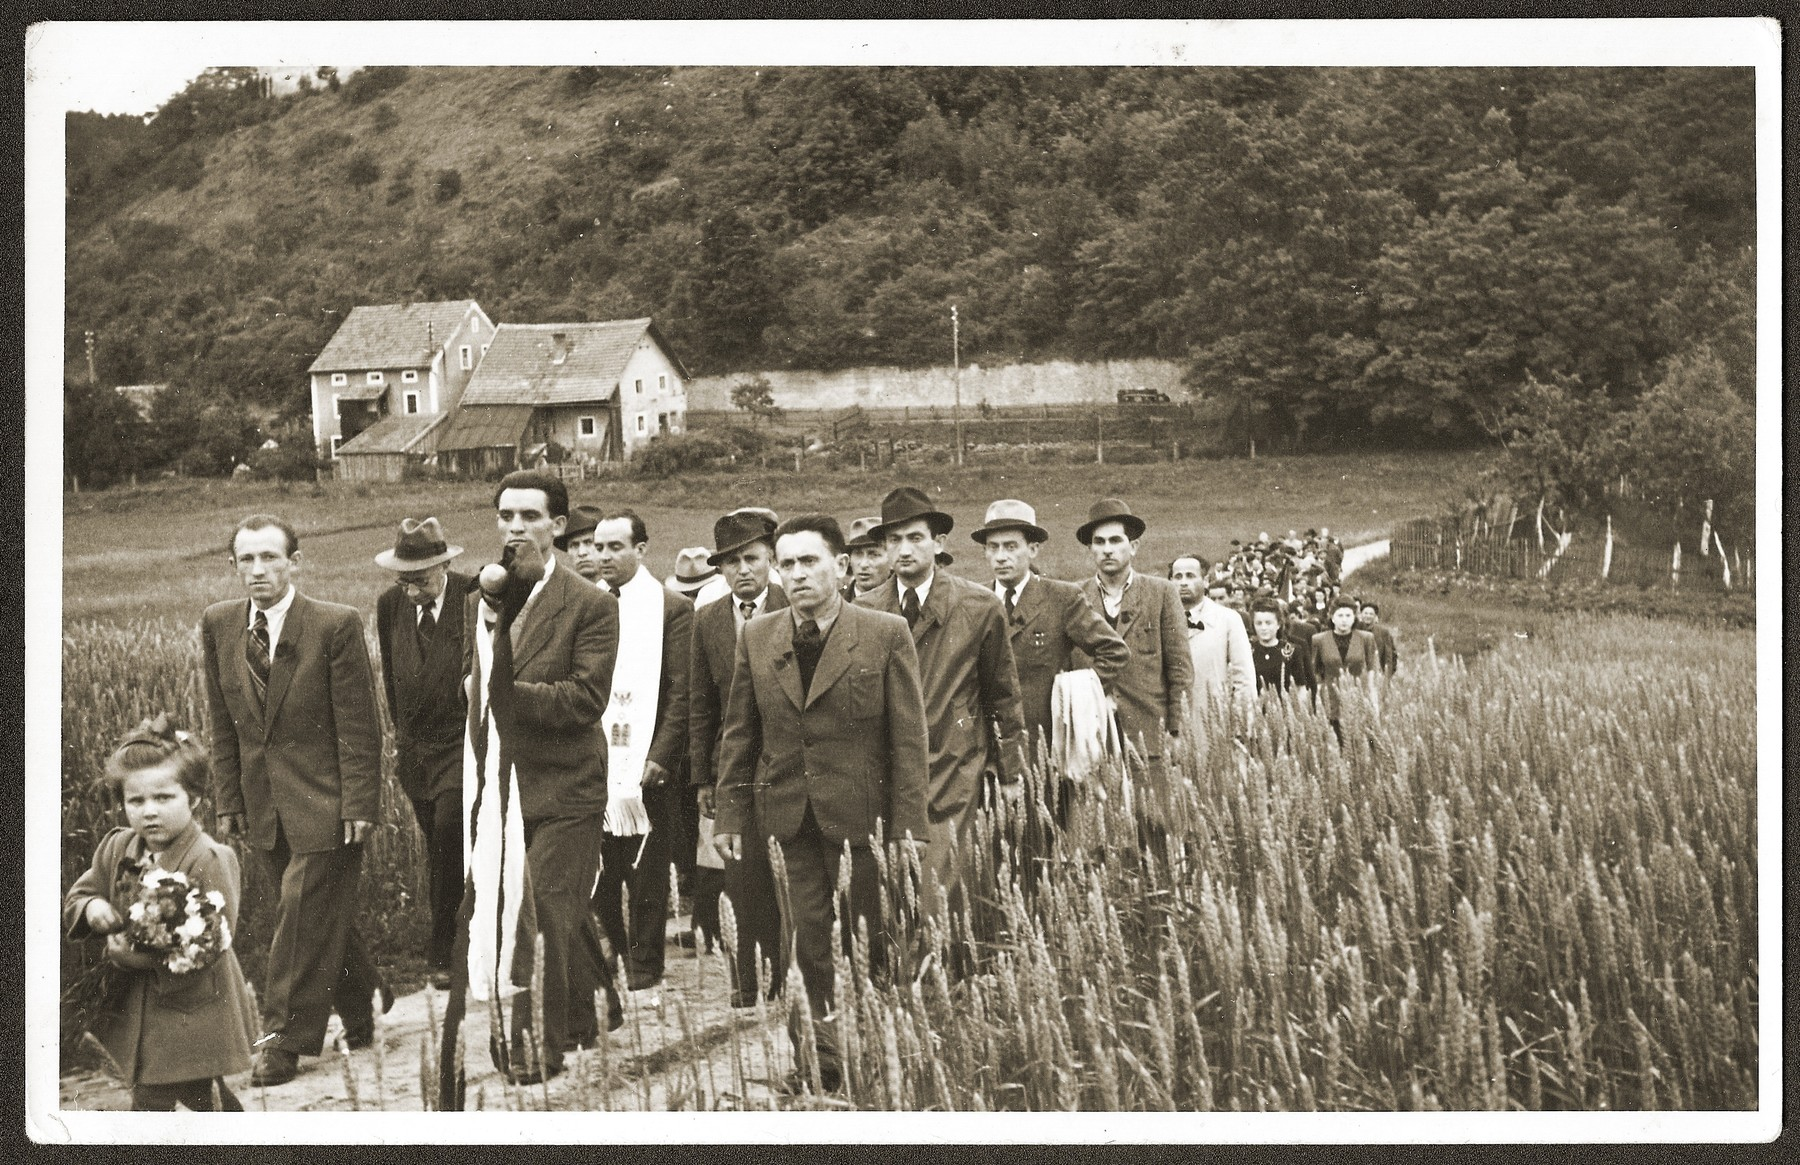 Mania Sztajnman leads a procession of DPs to the Jewish cemetery near Woerth an der Donau, where they will hold a memorial service.